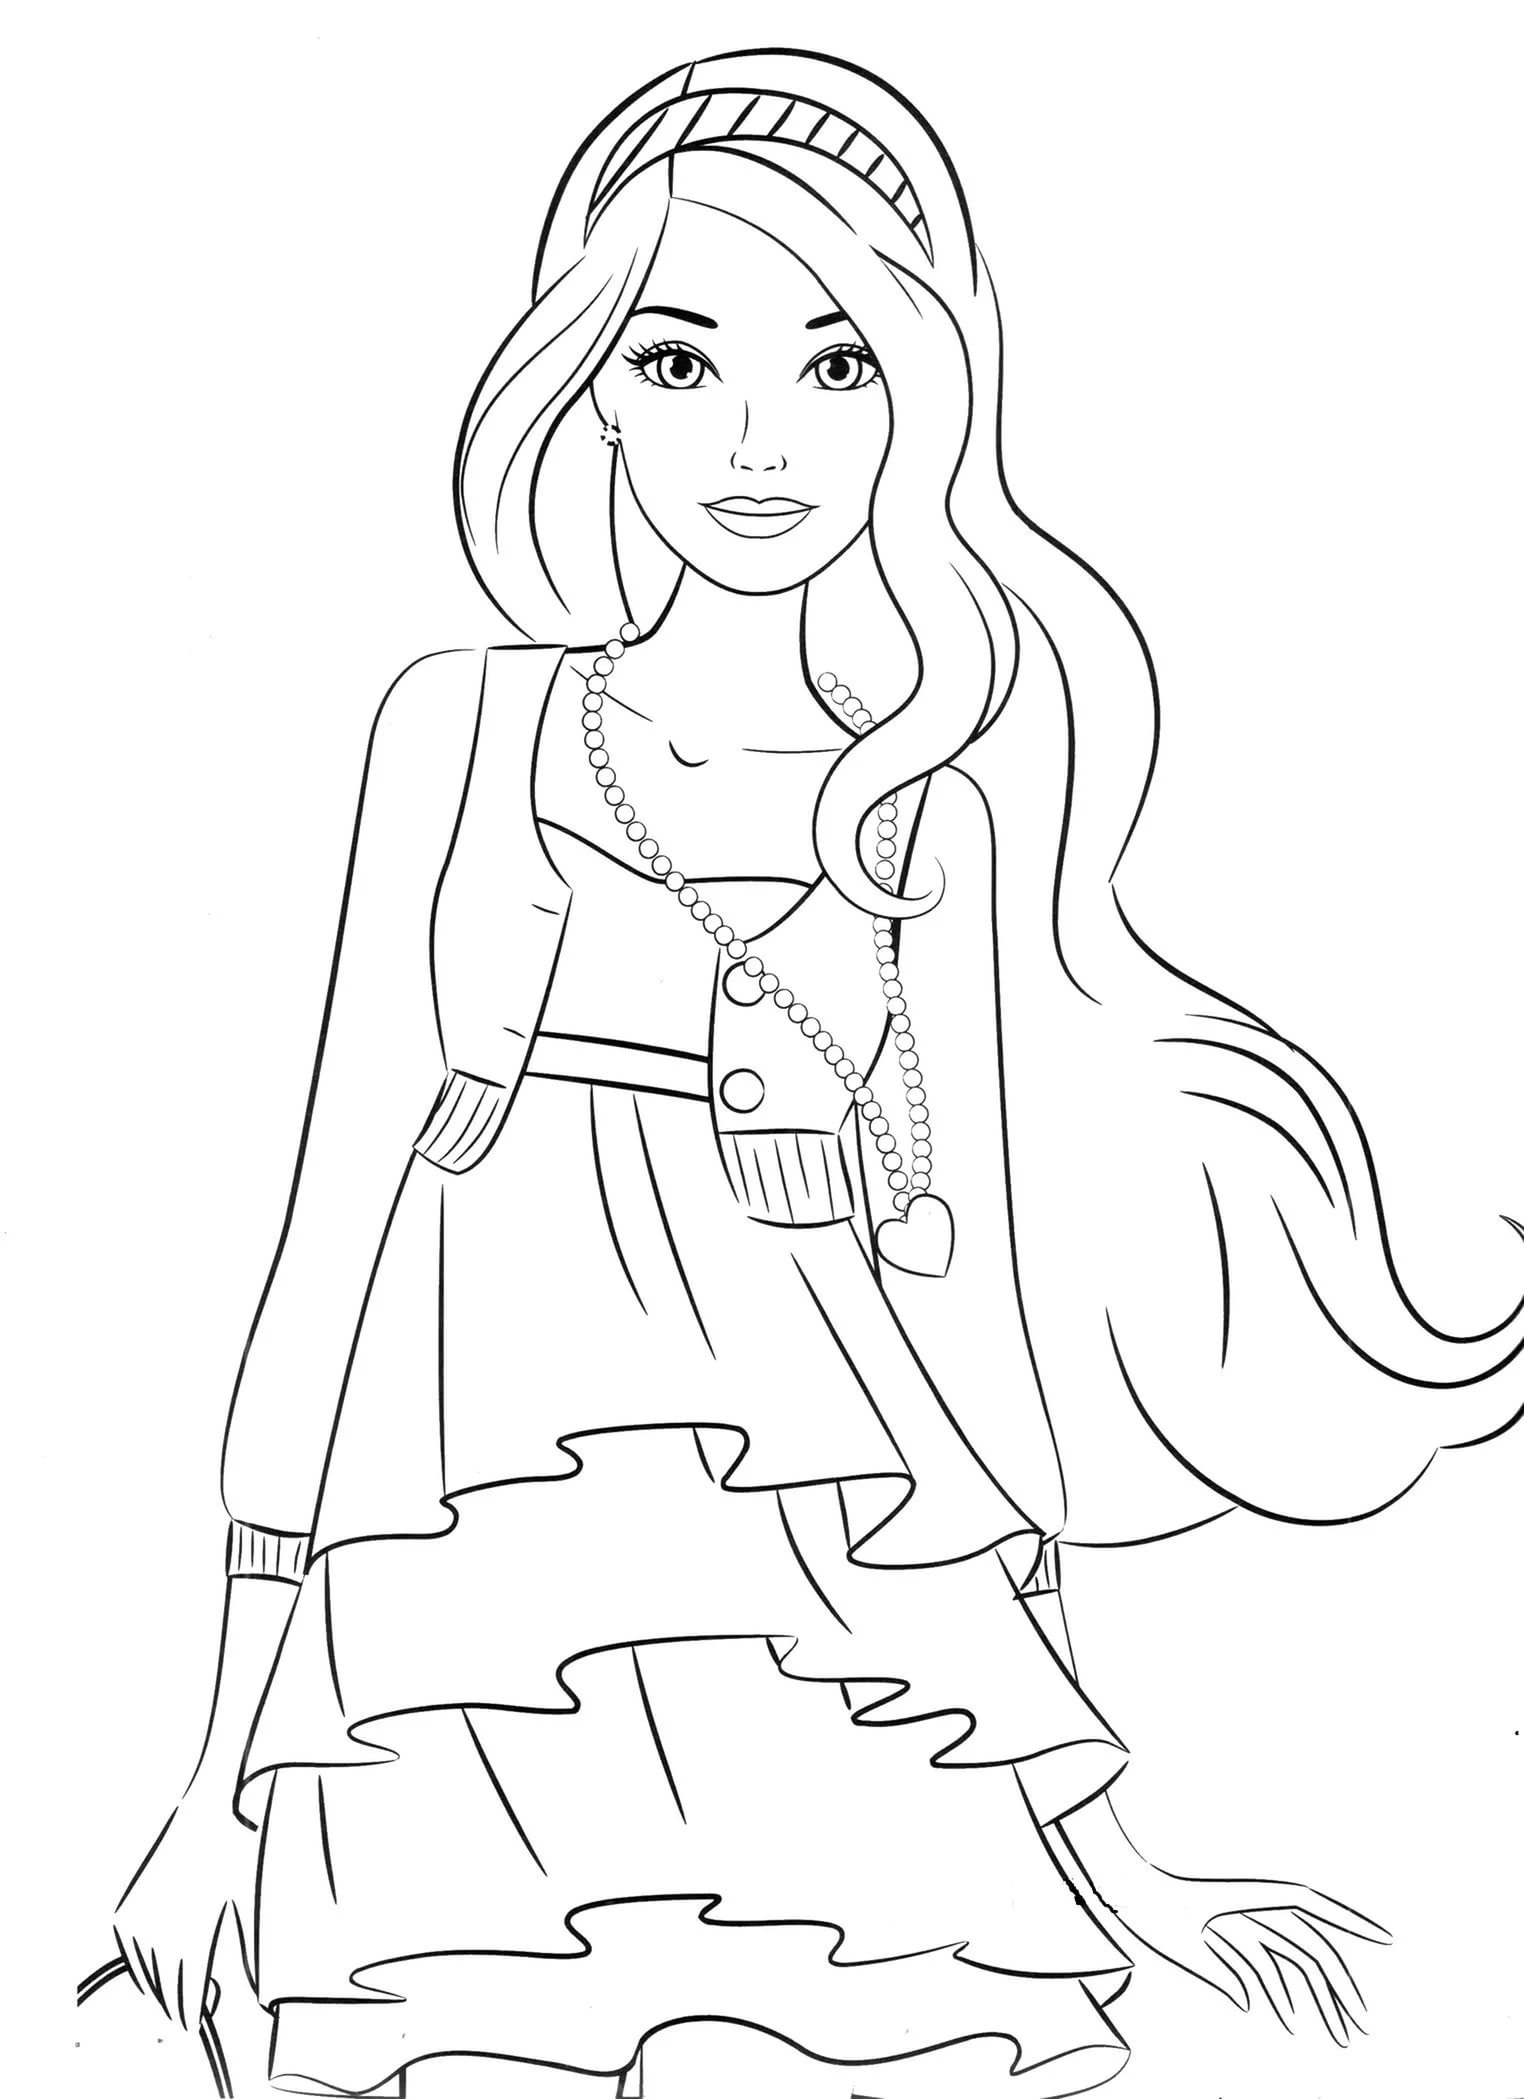 Coloring Pages For 8 9 10 Year Old Girls To Download And Coloring Pages For 9 10